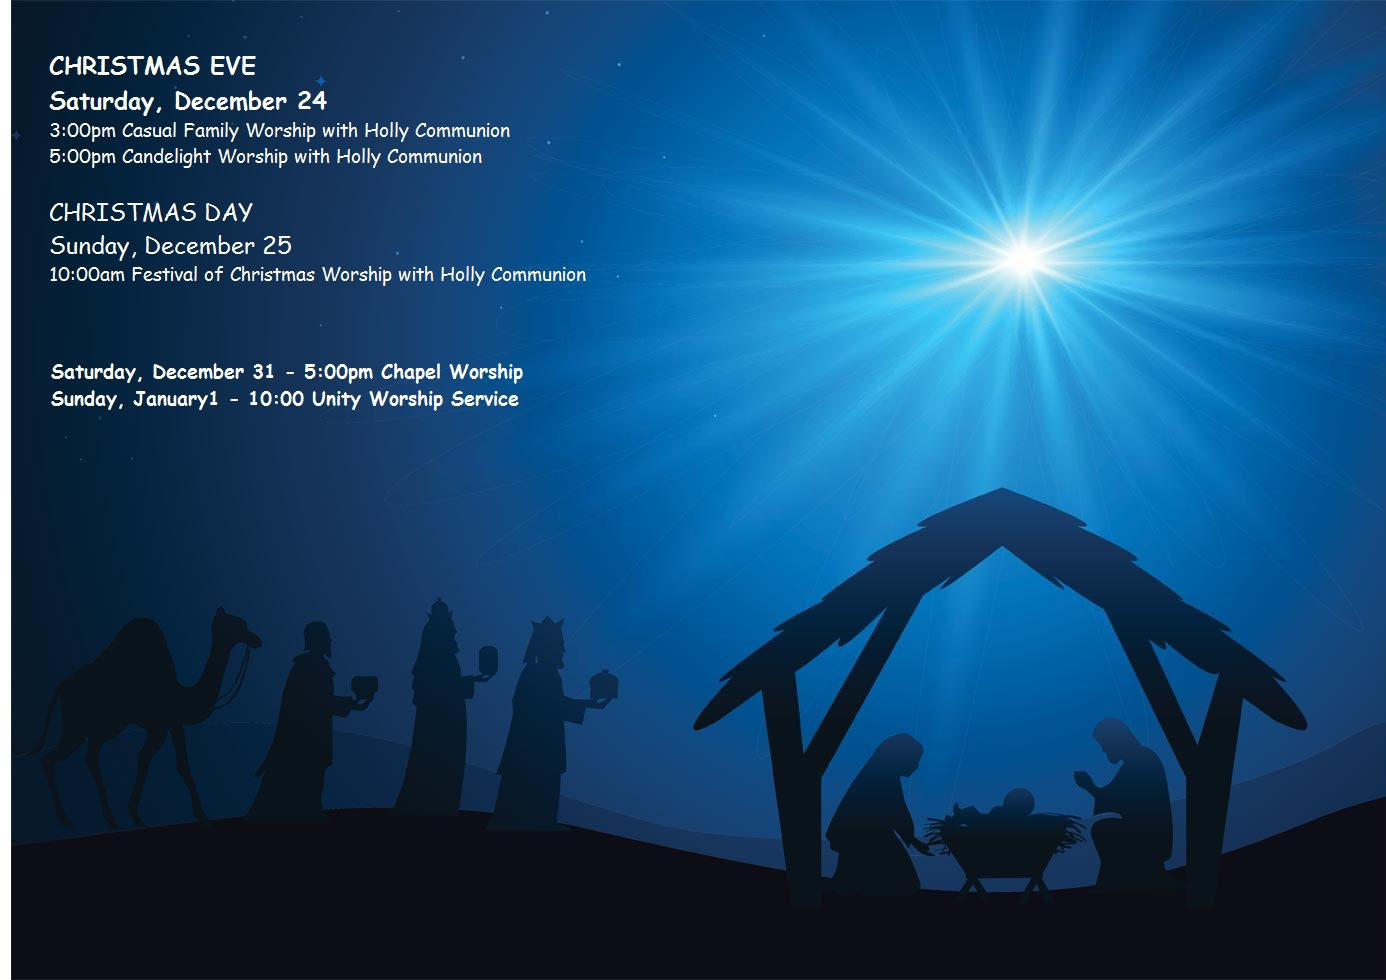 free-manger-scene-vector-background